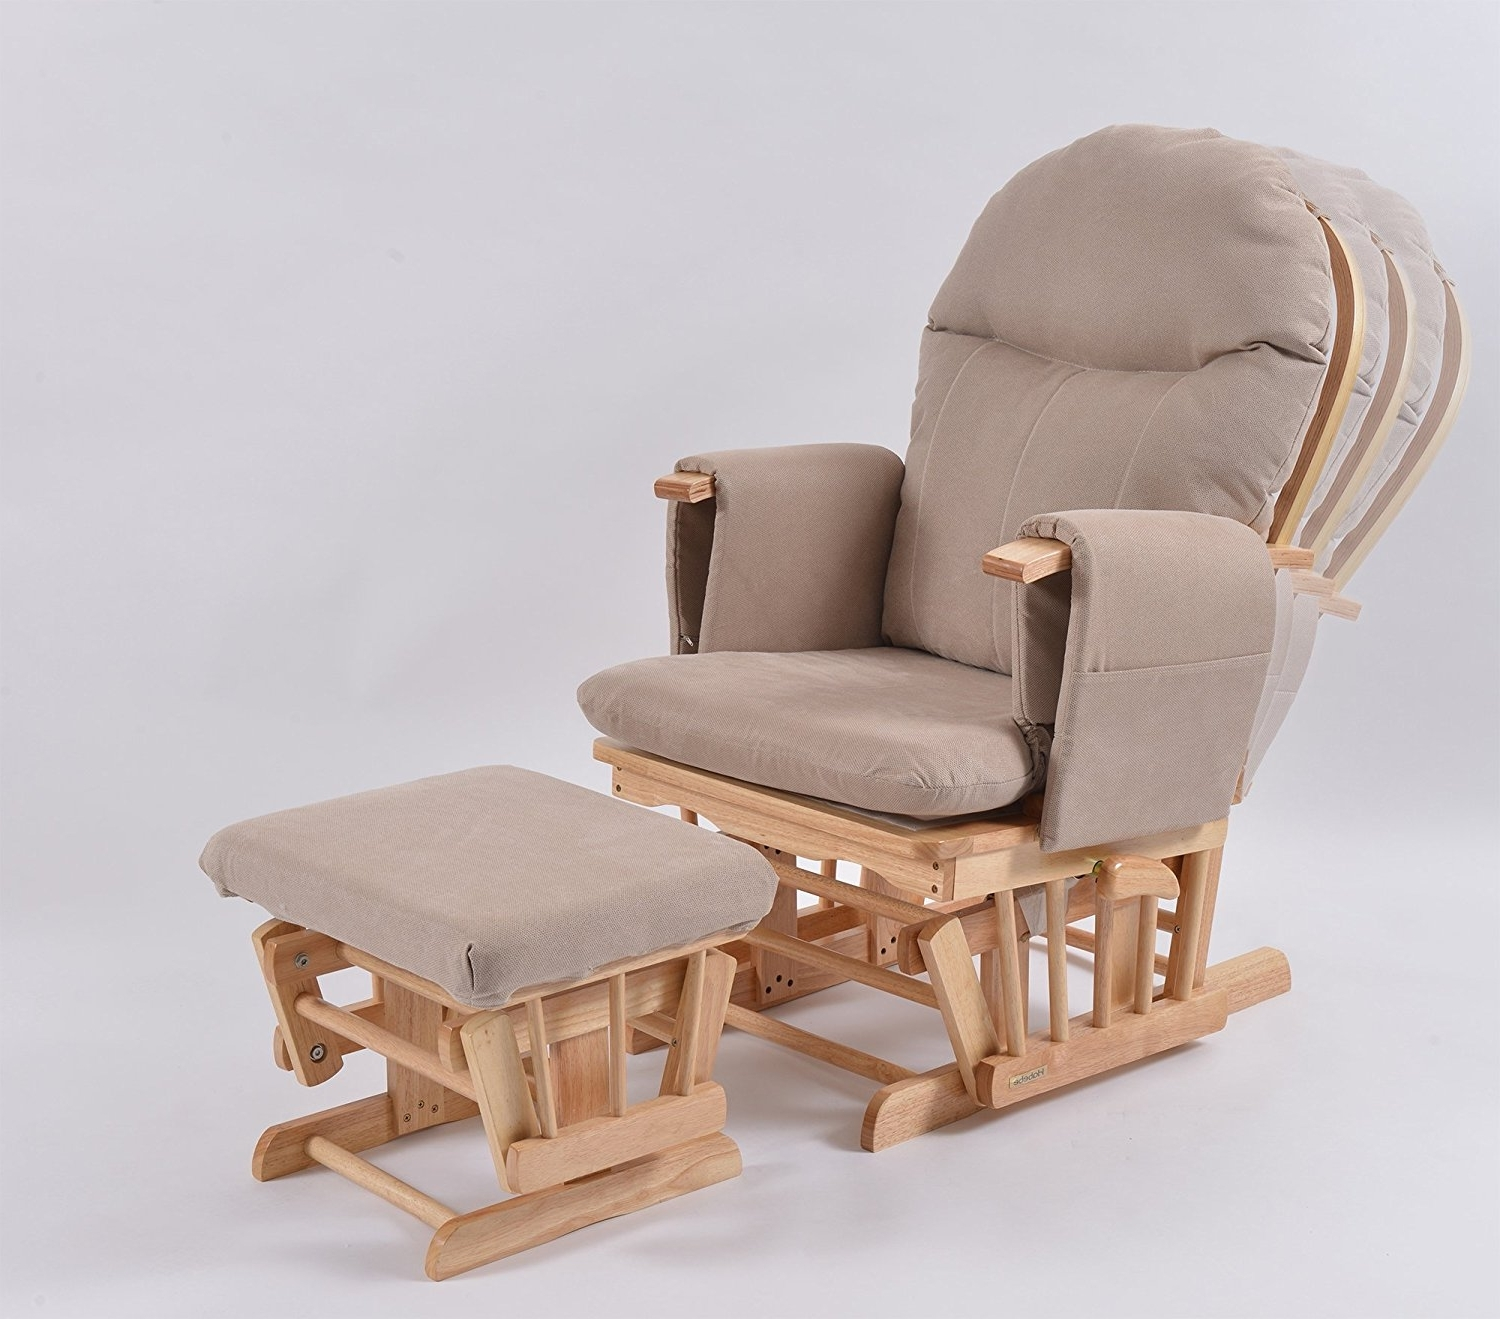 Rocking Chairs For Nursing With Regard To Well Liked Luxury Glider Rocking Chairs 1 Appealing Best Chair U Jacshoot (View 13 of 15)